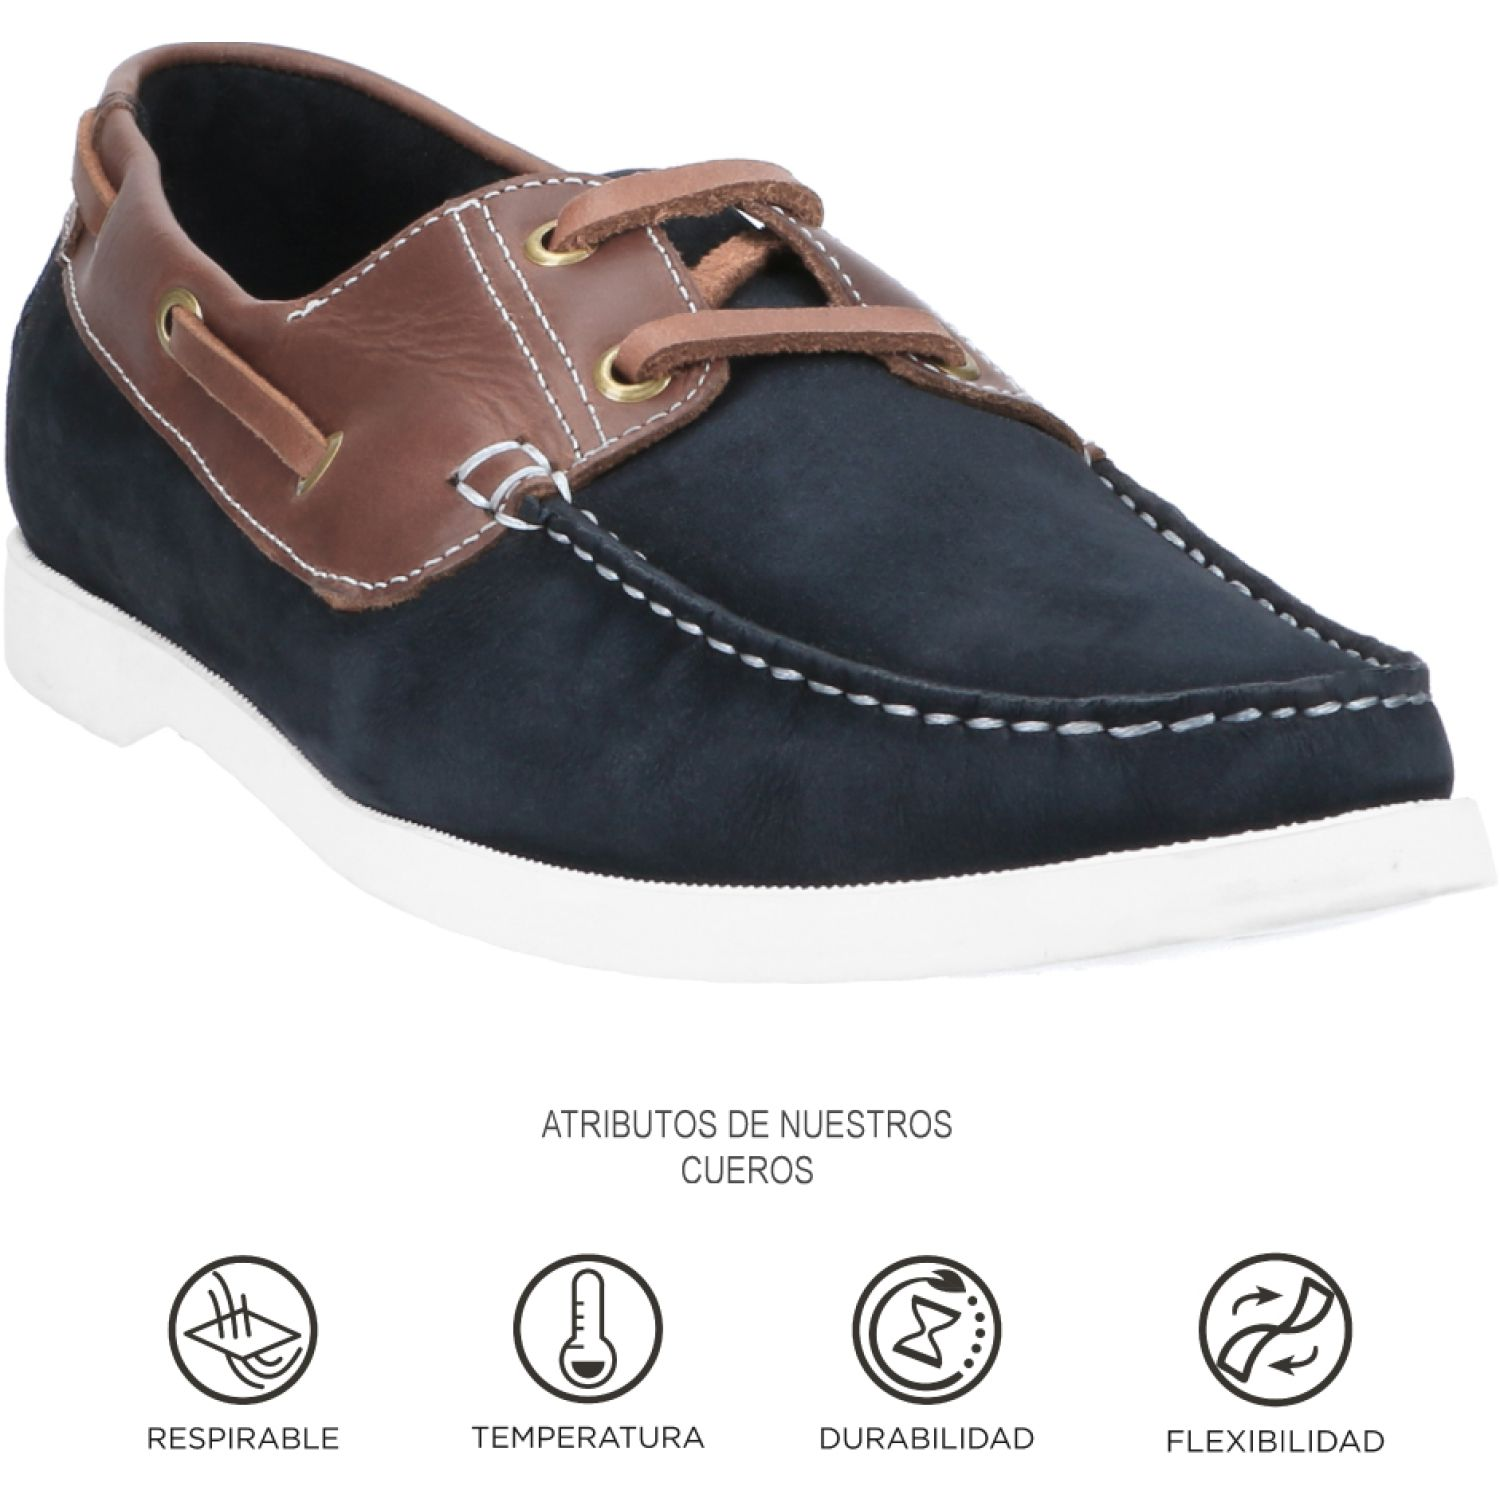 GUANTE Marina Azul / marrón Oxfords